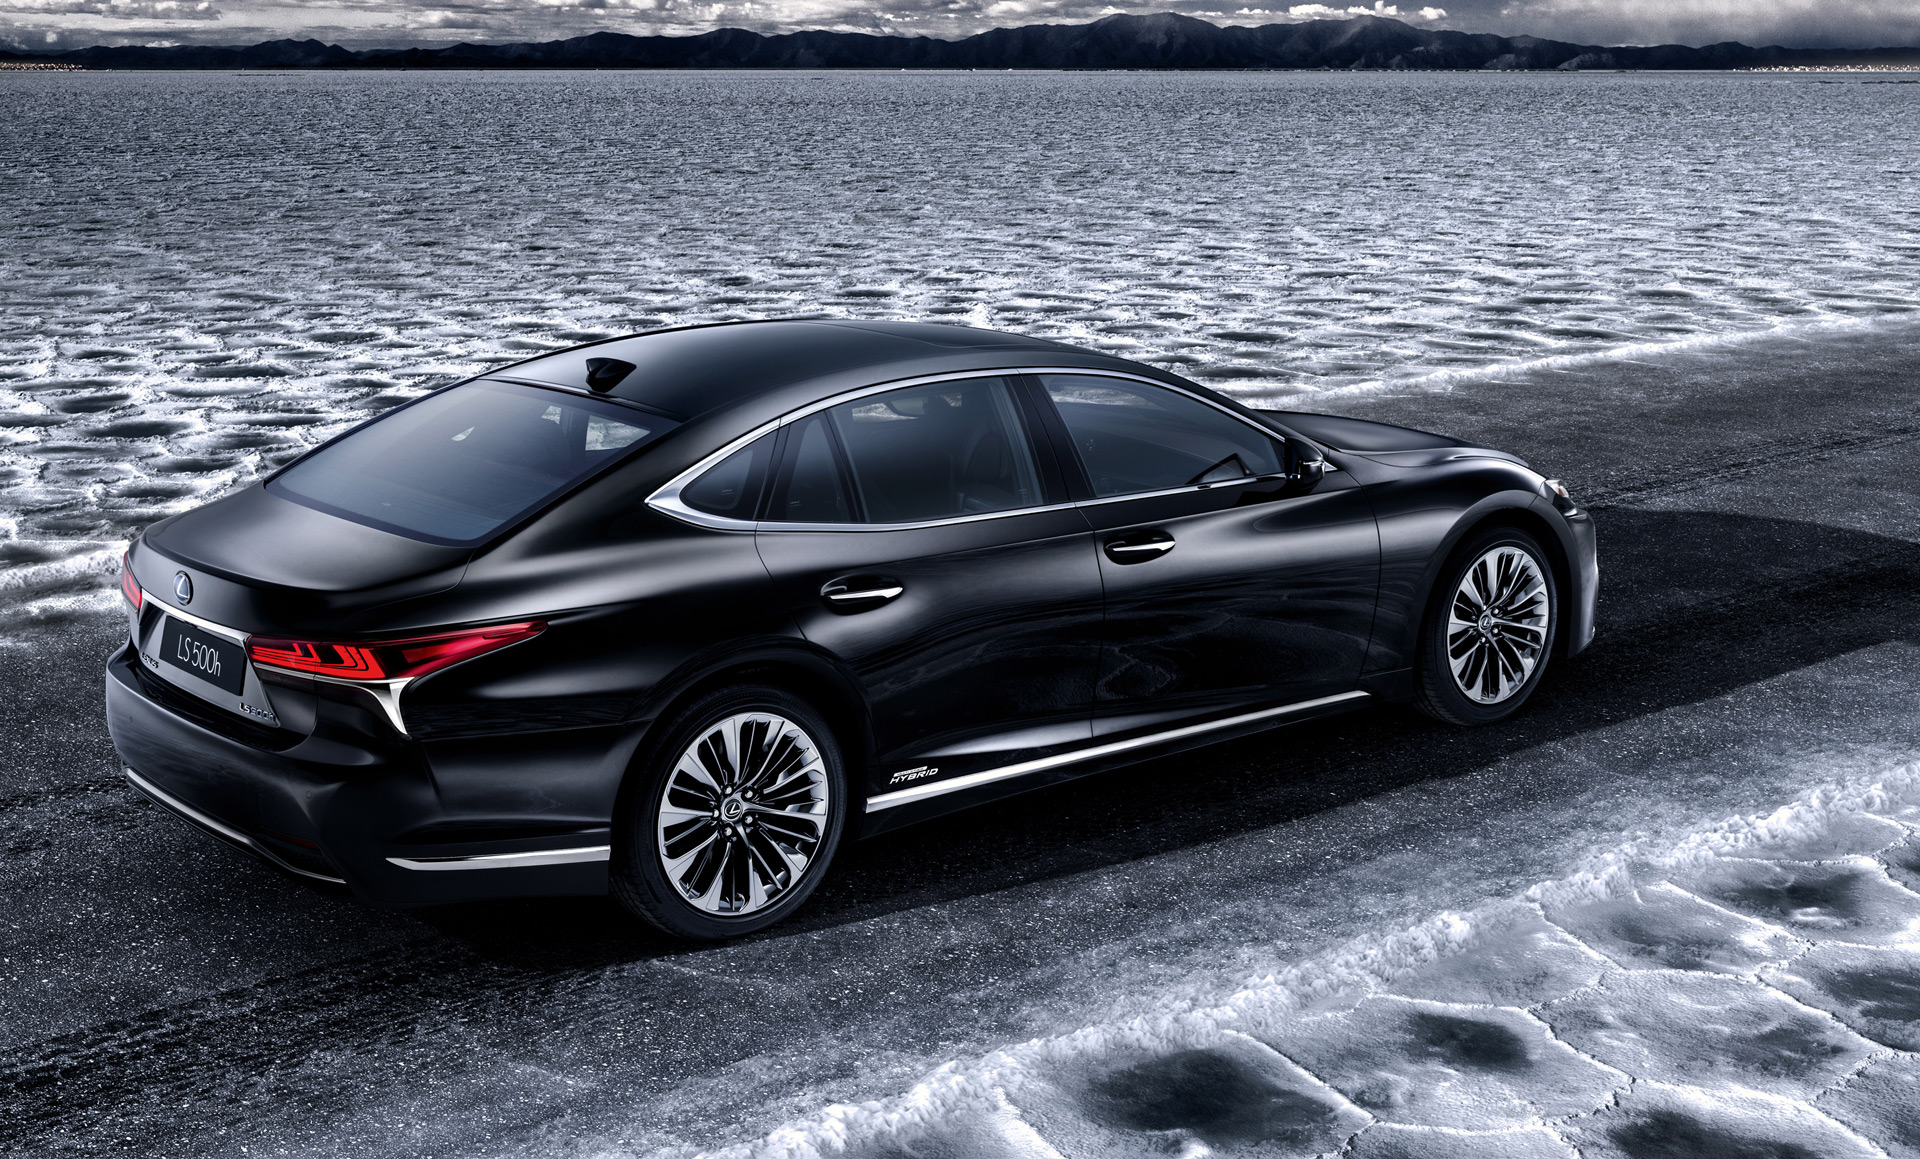 Luxury Vehicle: 2018 Lexus LS 500h Hybrid Luxury Sedan To Debut At Geneva Show